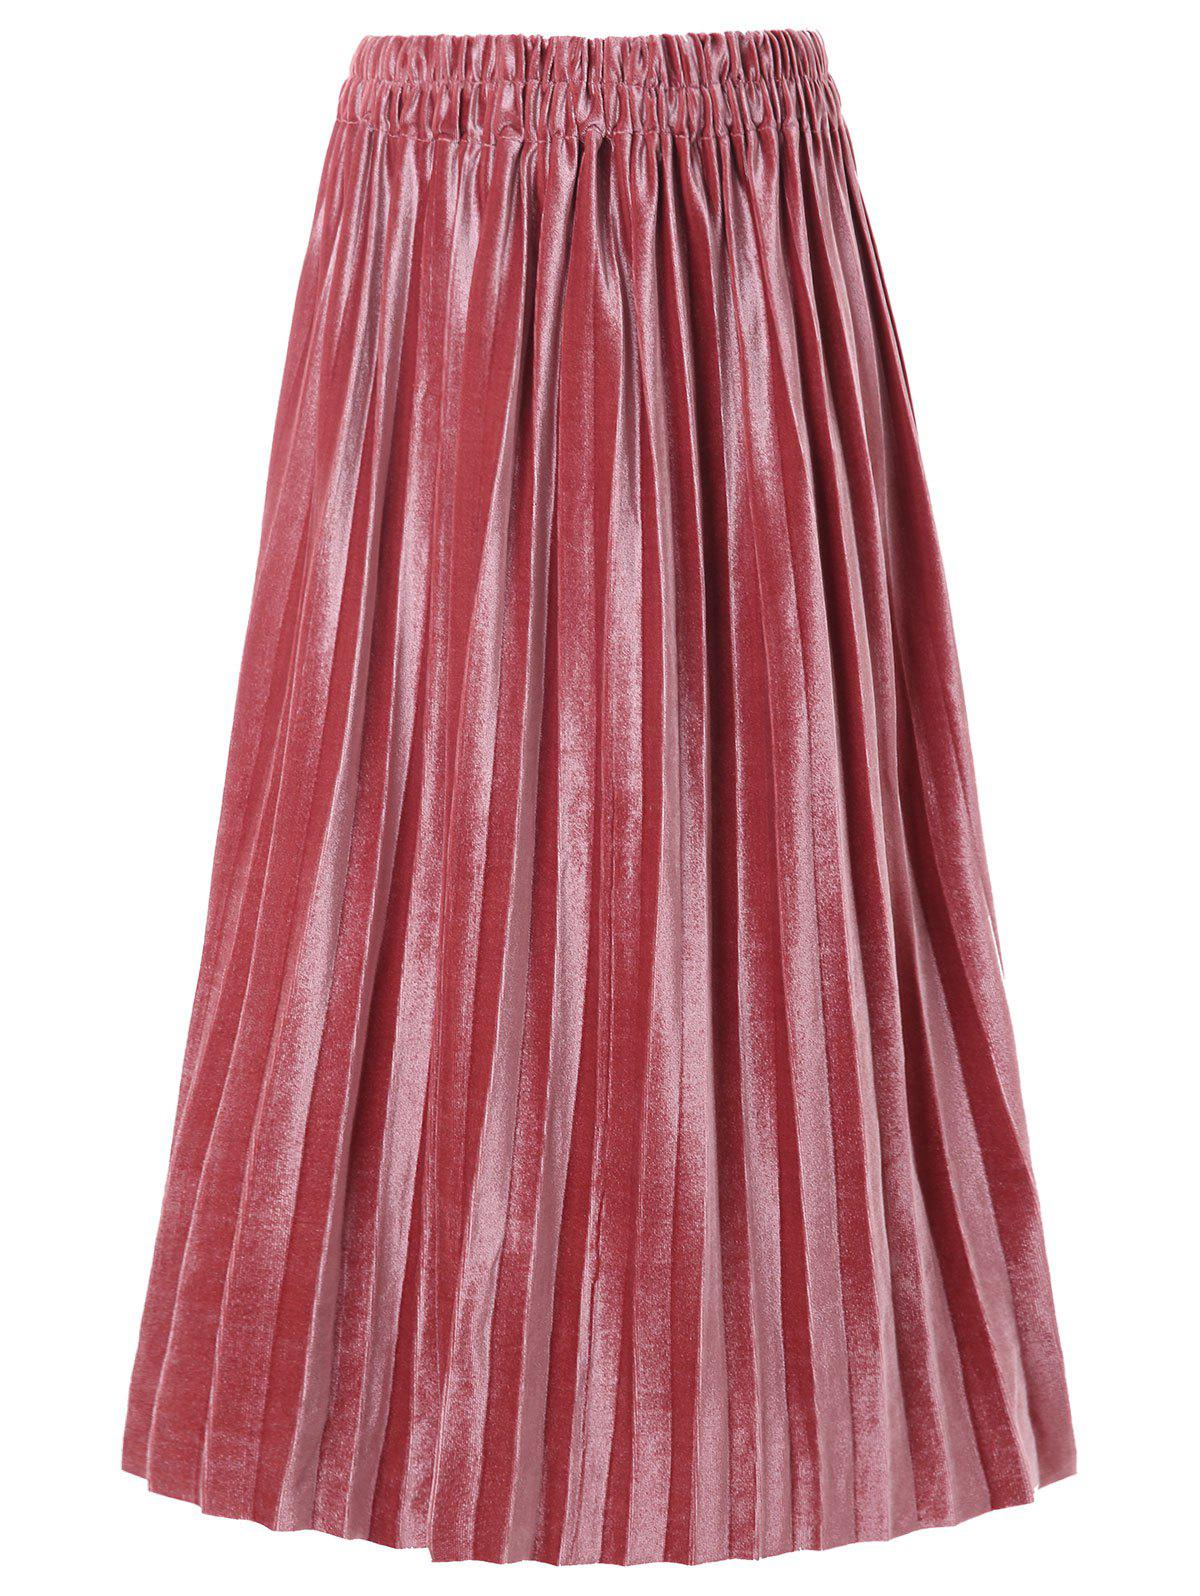 Shop Velvet Pleated Mid Skirt